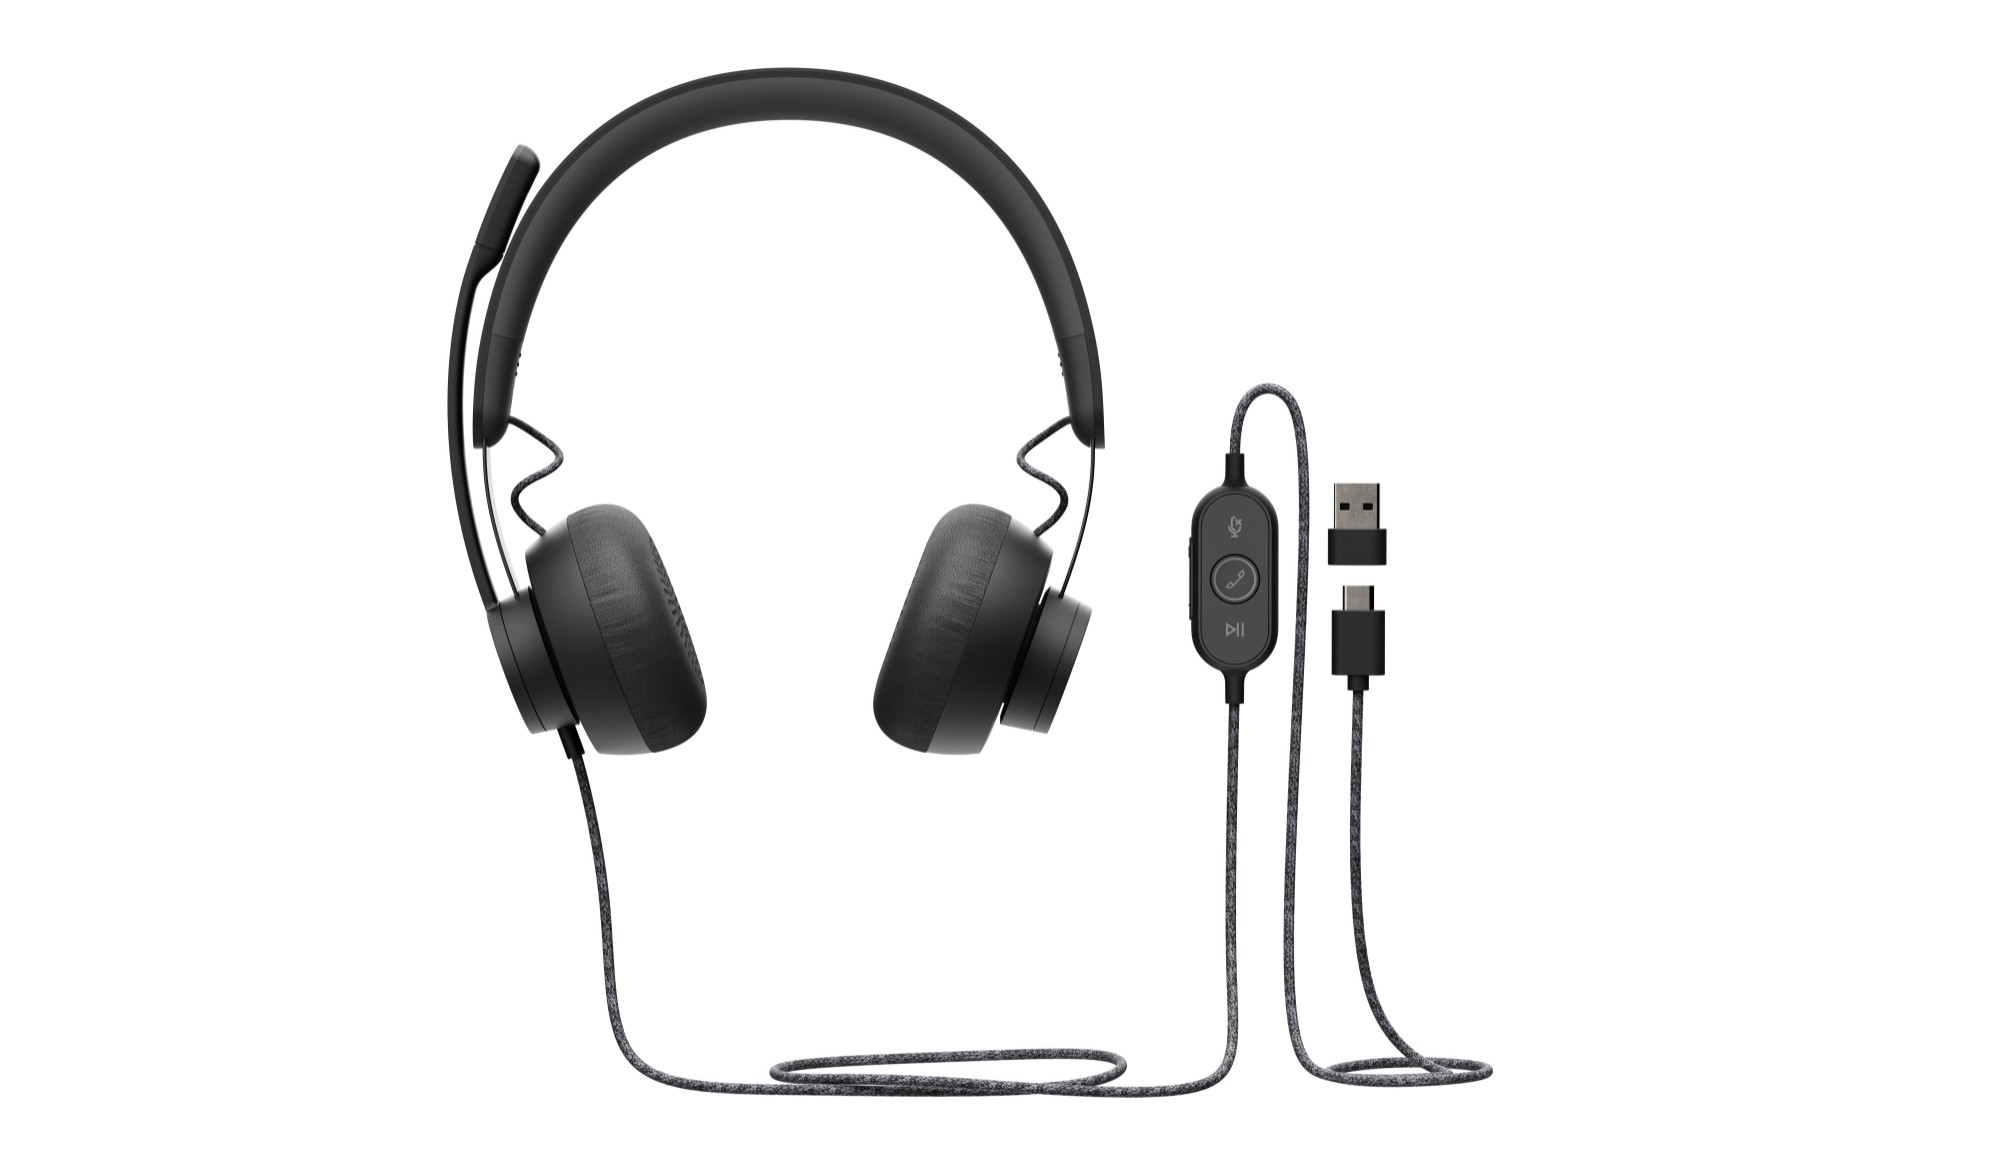 Logitech Zone Wired UC Auriculares Diadema Negro